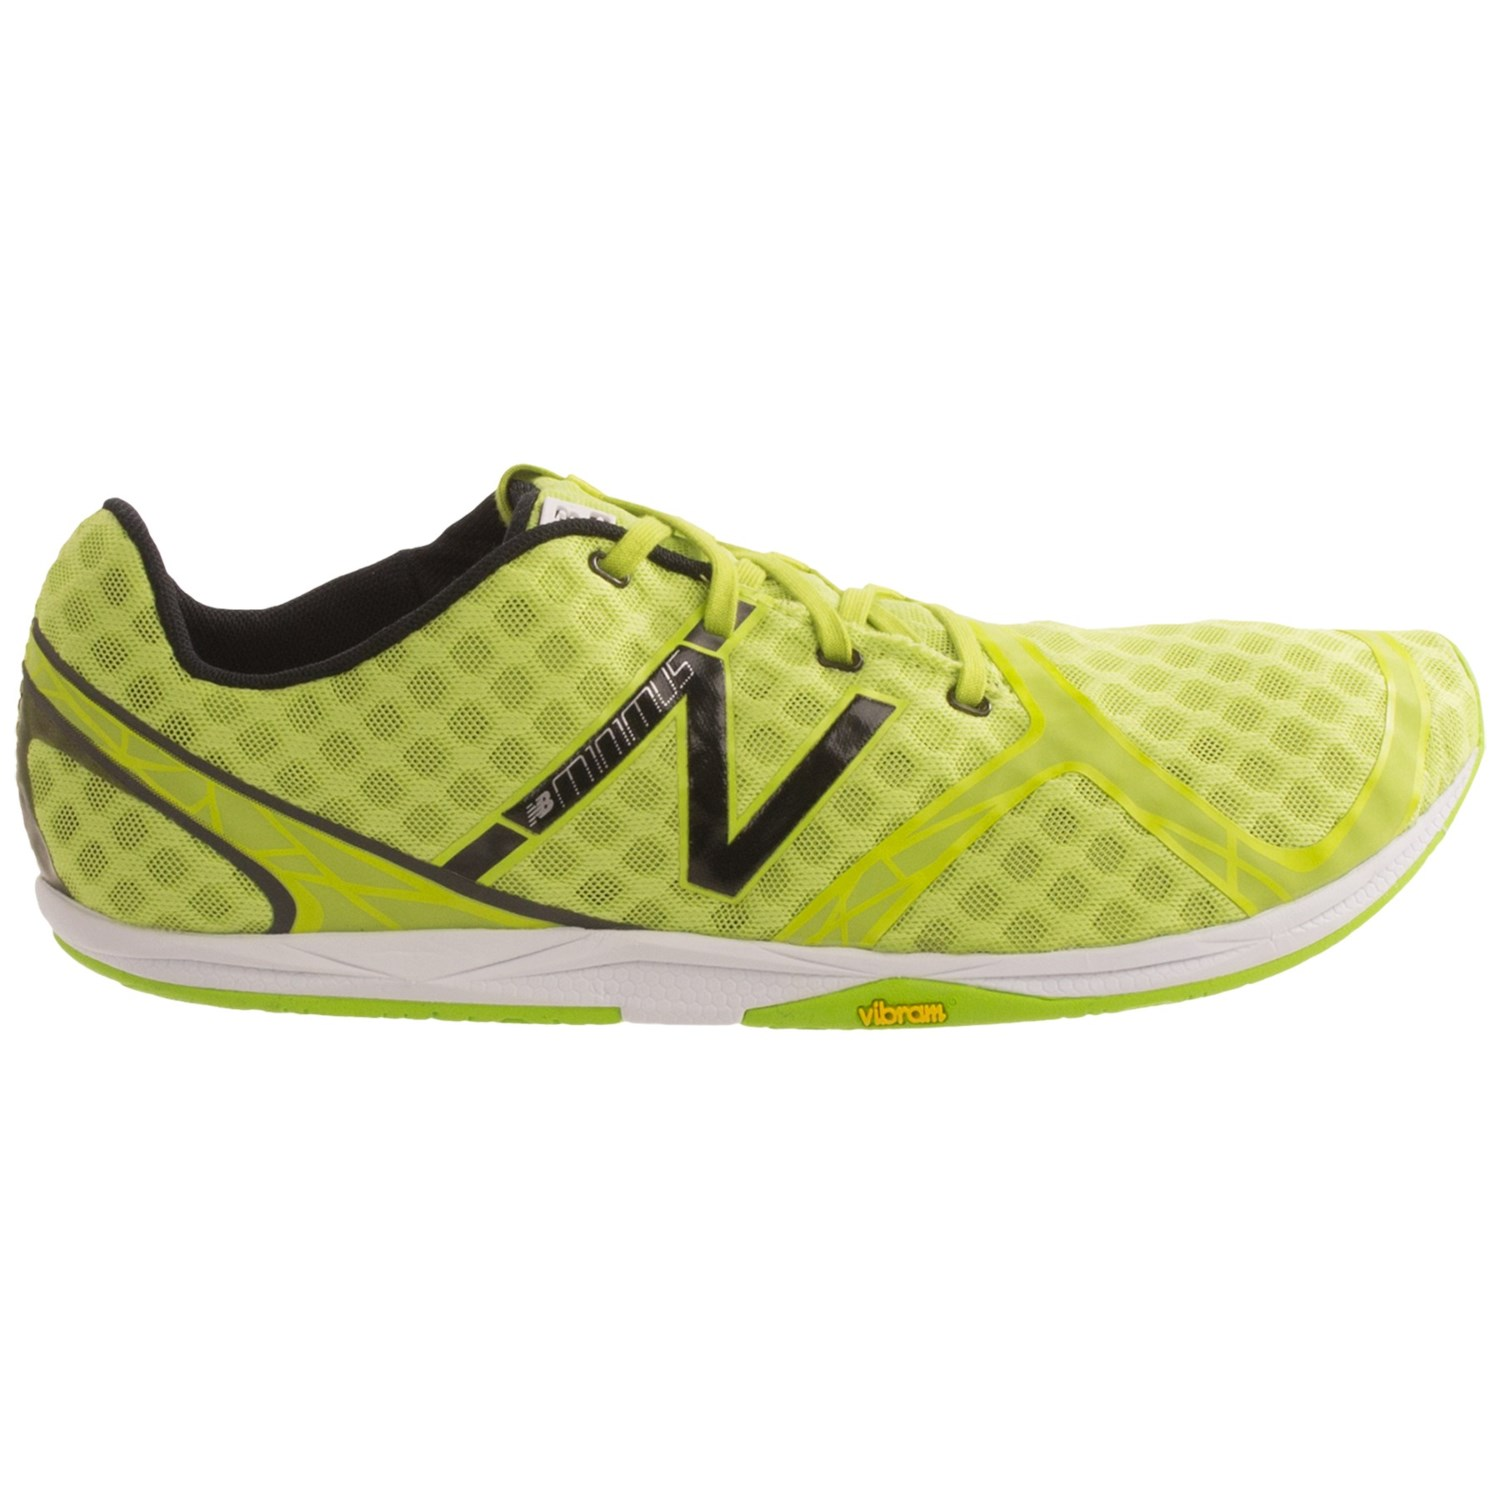 new balance minimalist running shoes philly diet doctor